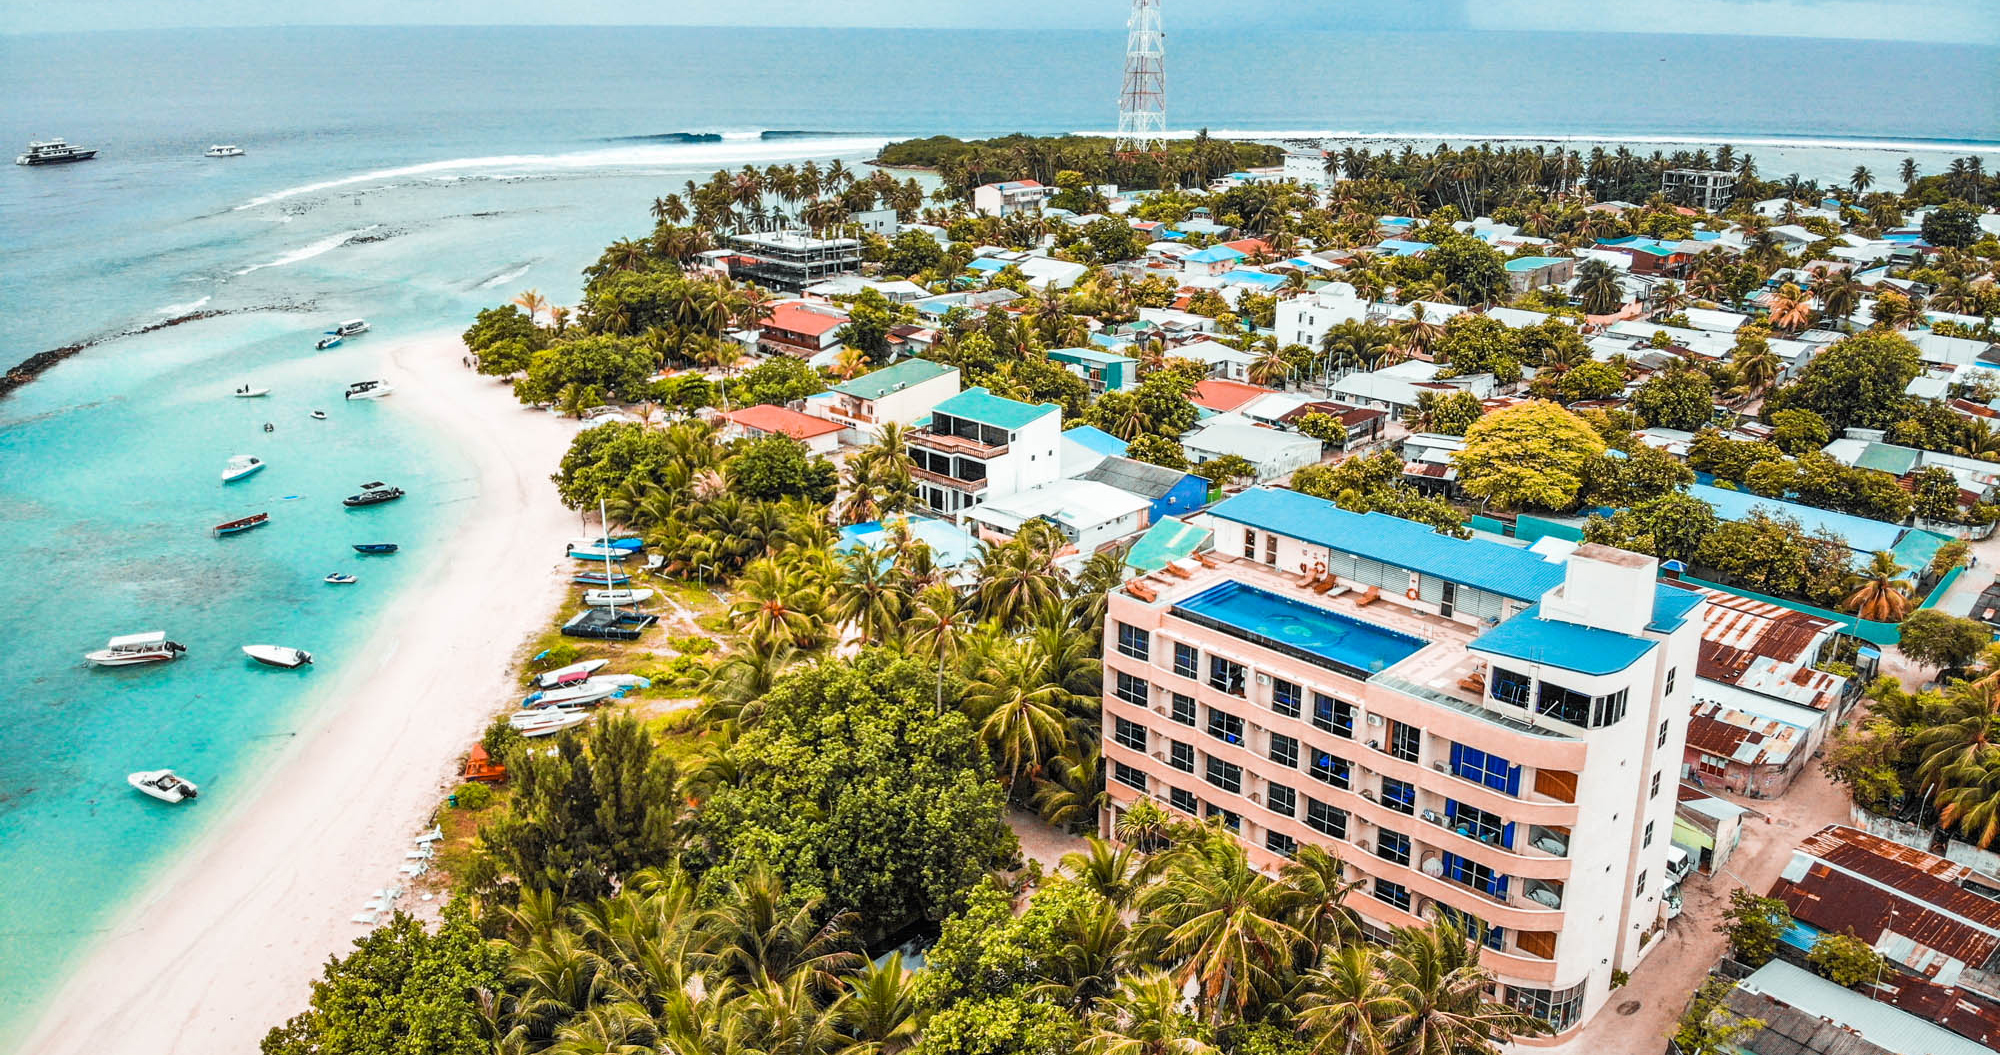 Review Surfing The Maldives At Season Paradise Thulusdhoo